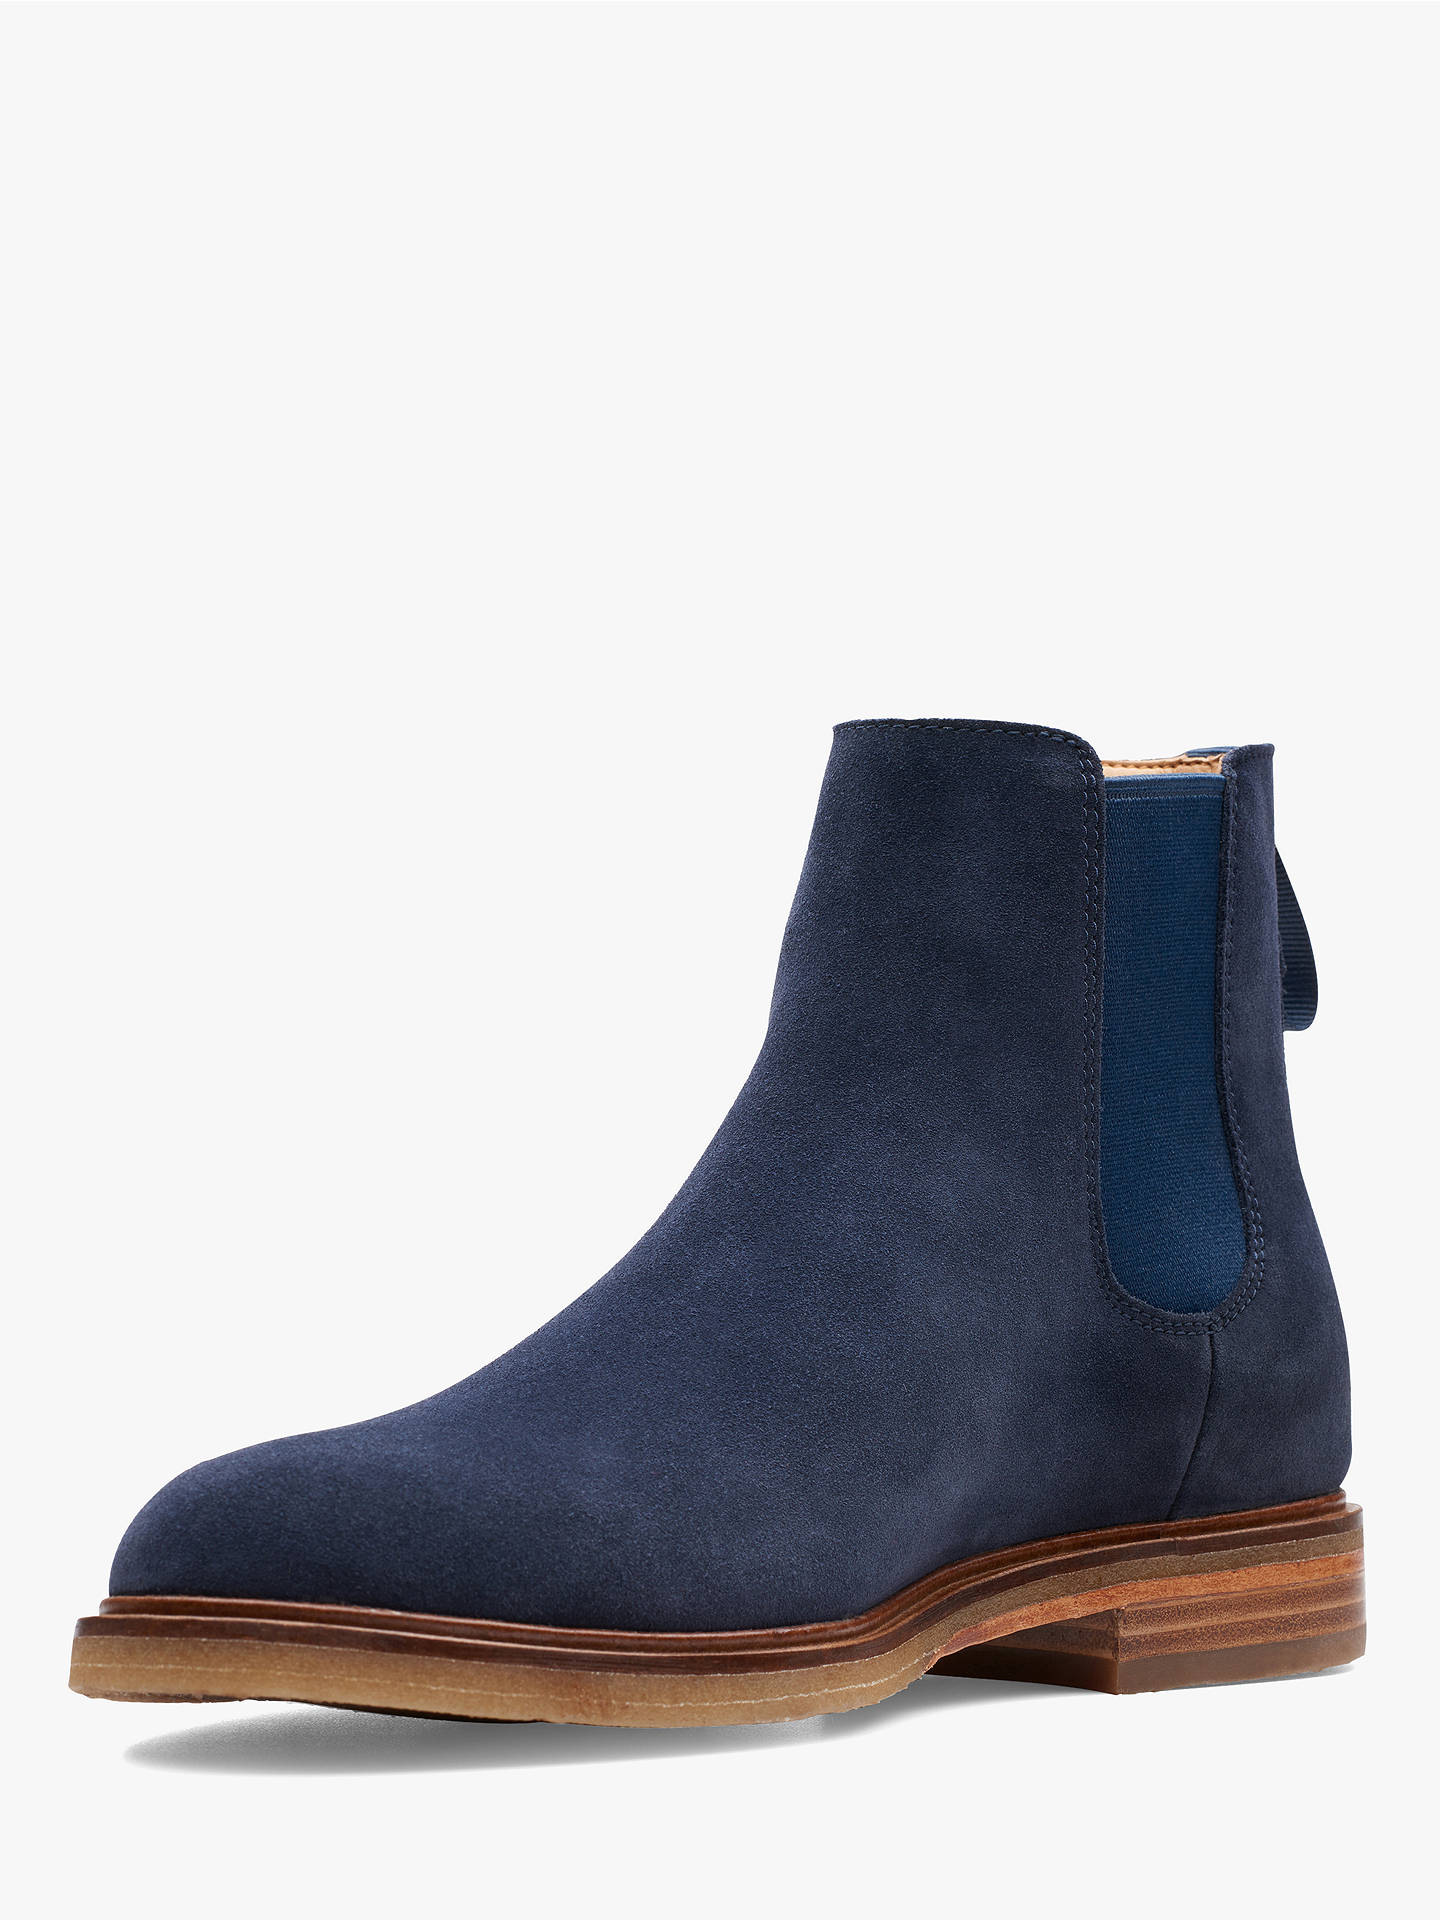 e1673477bf2231 Clarks Clarkdale Gobi Suede Chelsea Boots at John Lewis   Partners